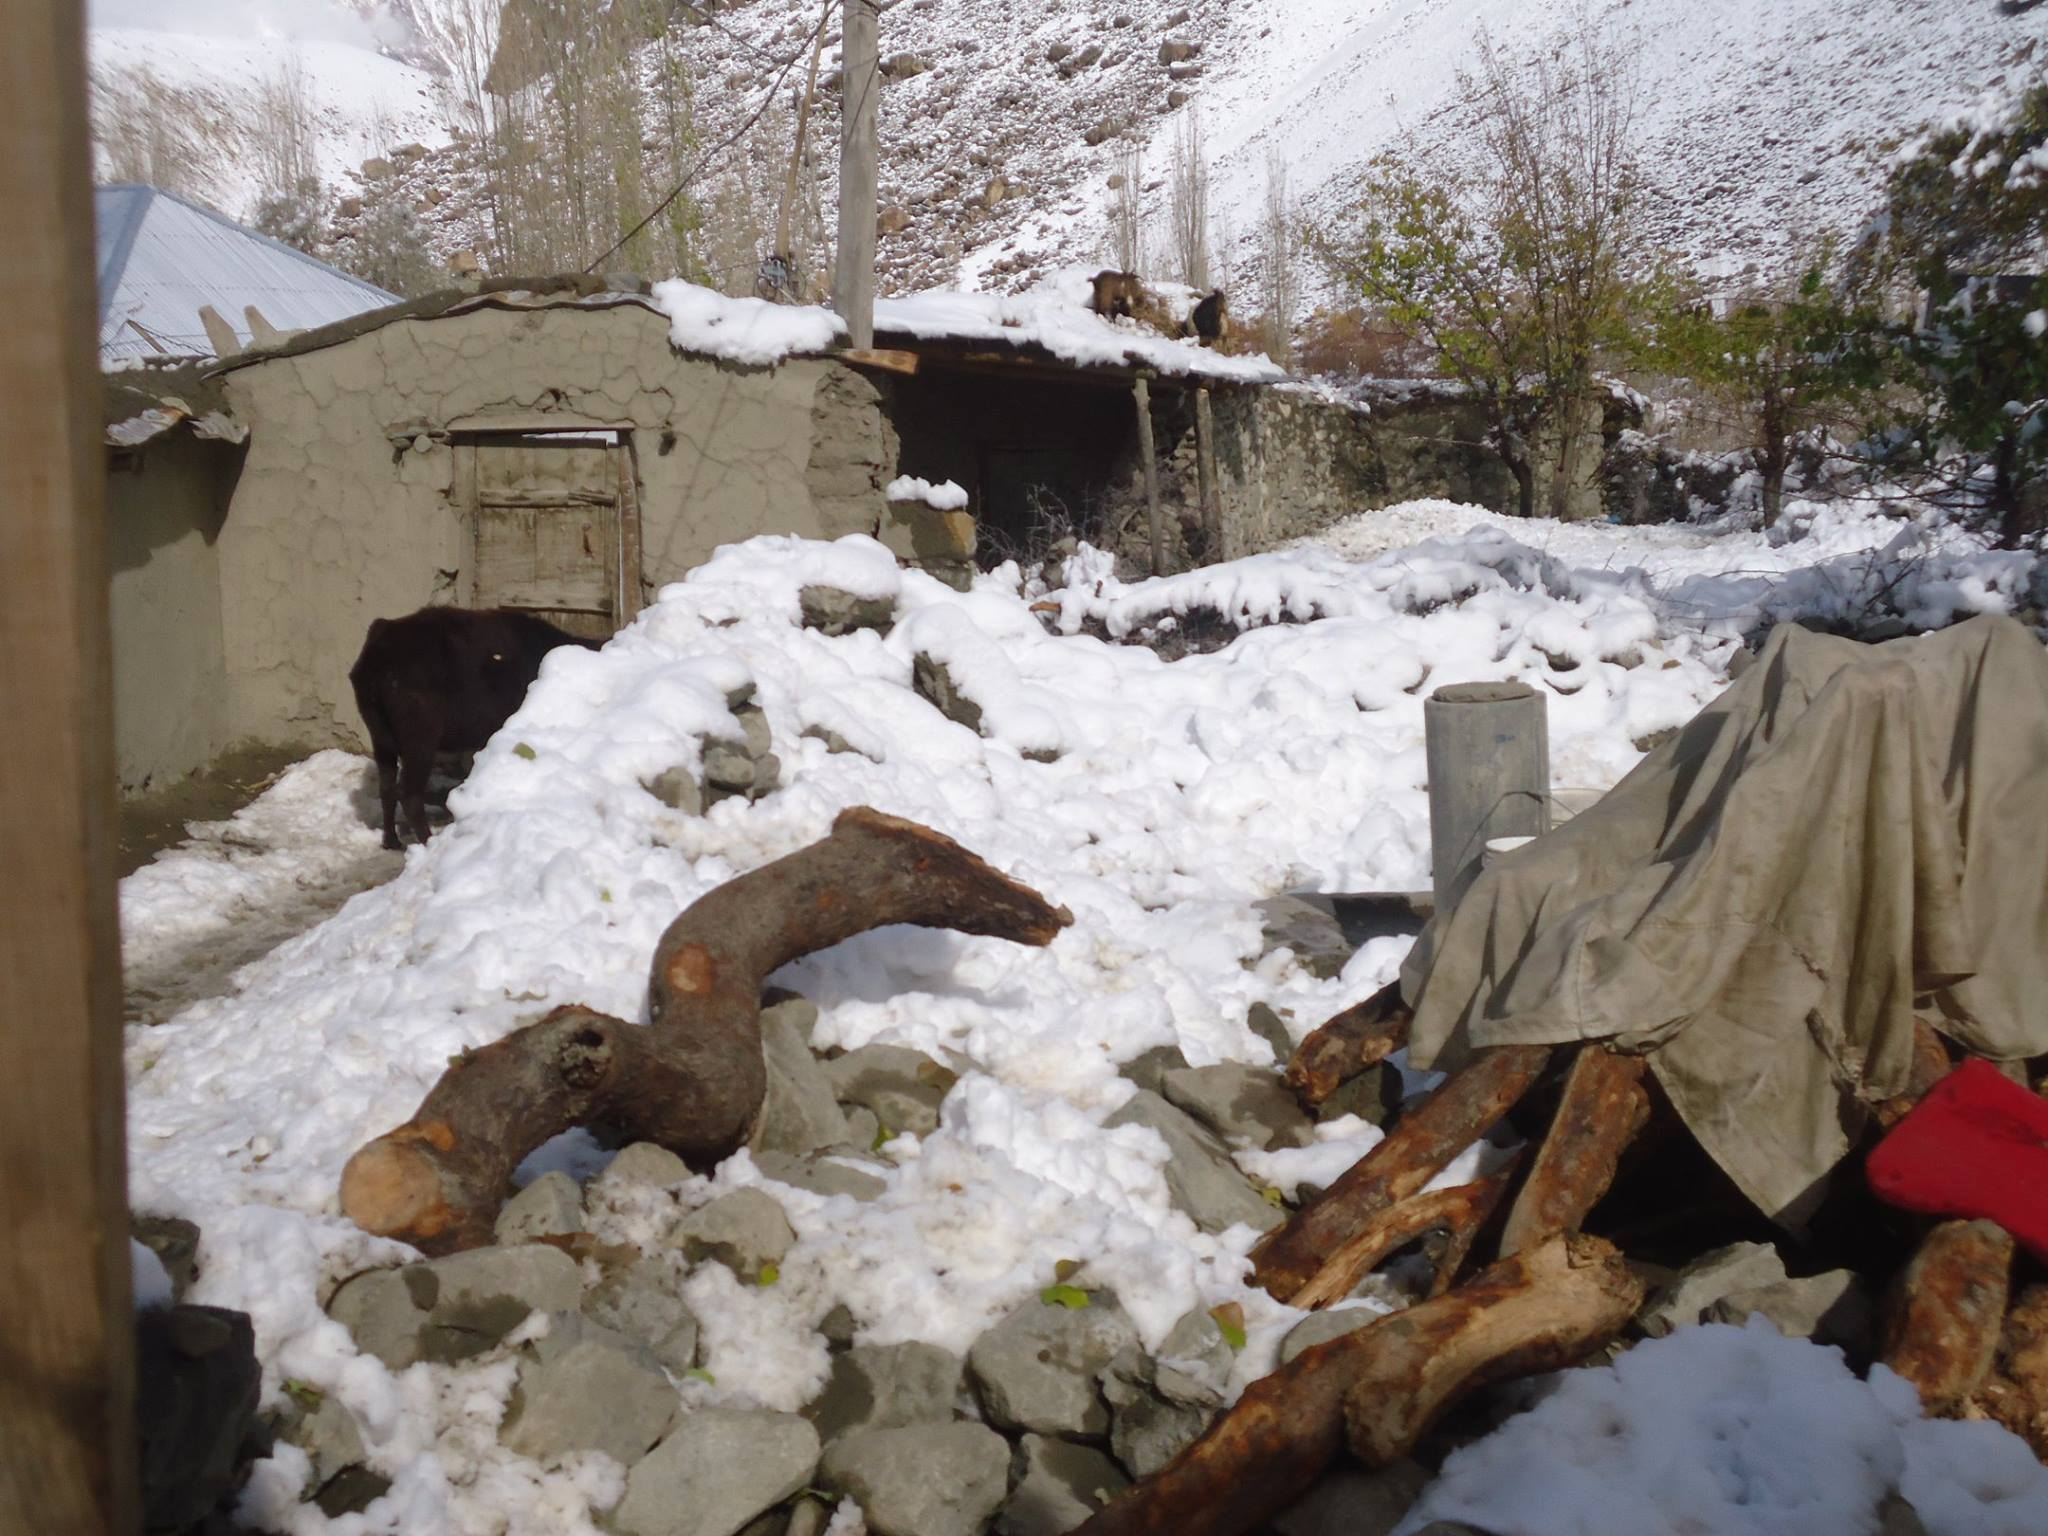 270 million rupees to be distributed among earthquake, flood affectees